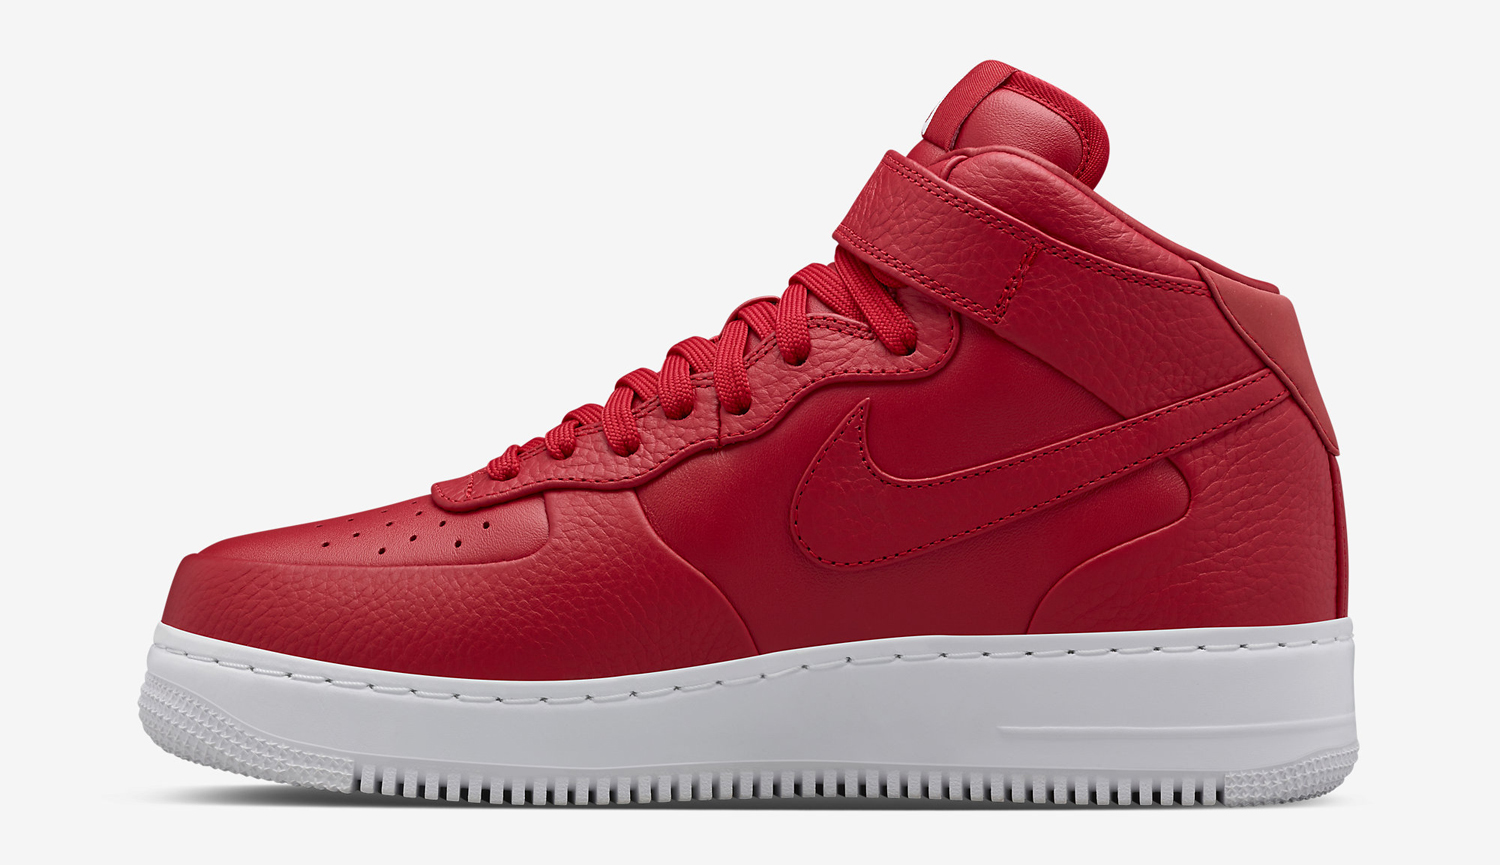 nikelab-air-force-1-mid-red-white-04